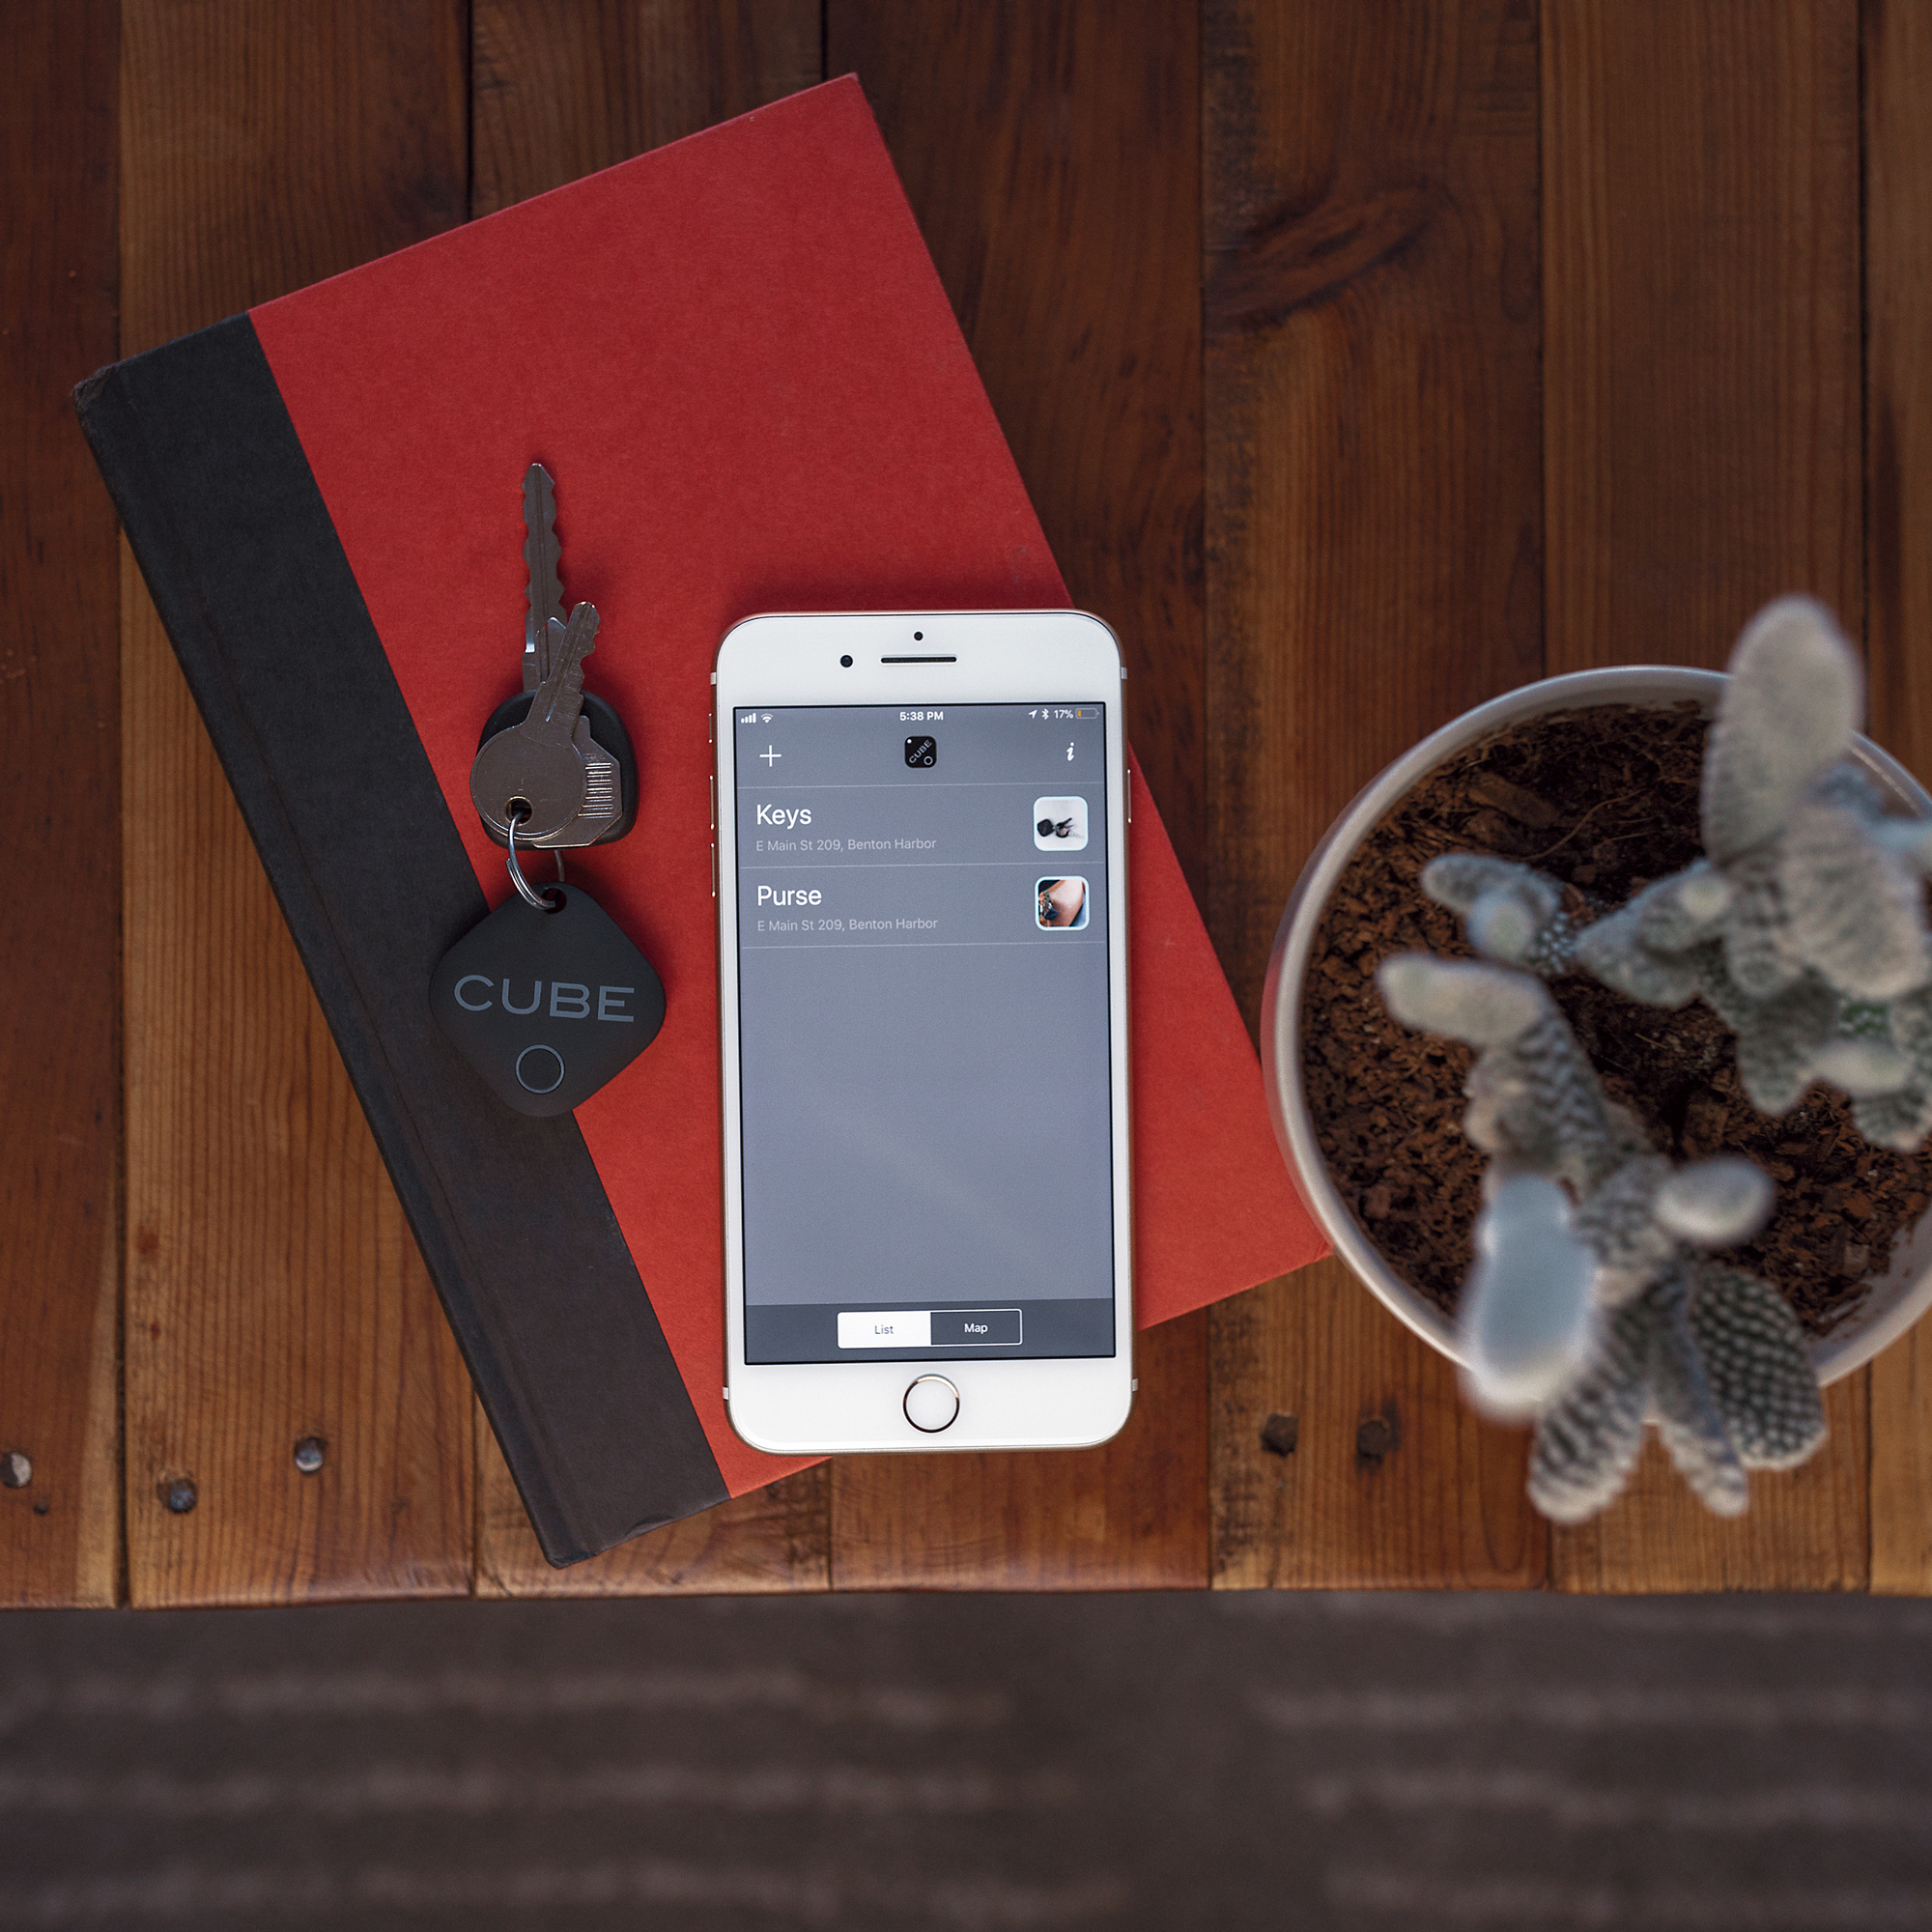 Attach and Track - Keep tabs on the things most important to you. Attach and Track via the cube app.